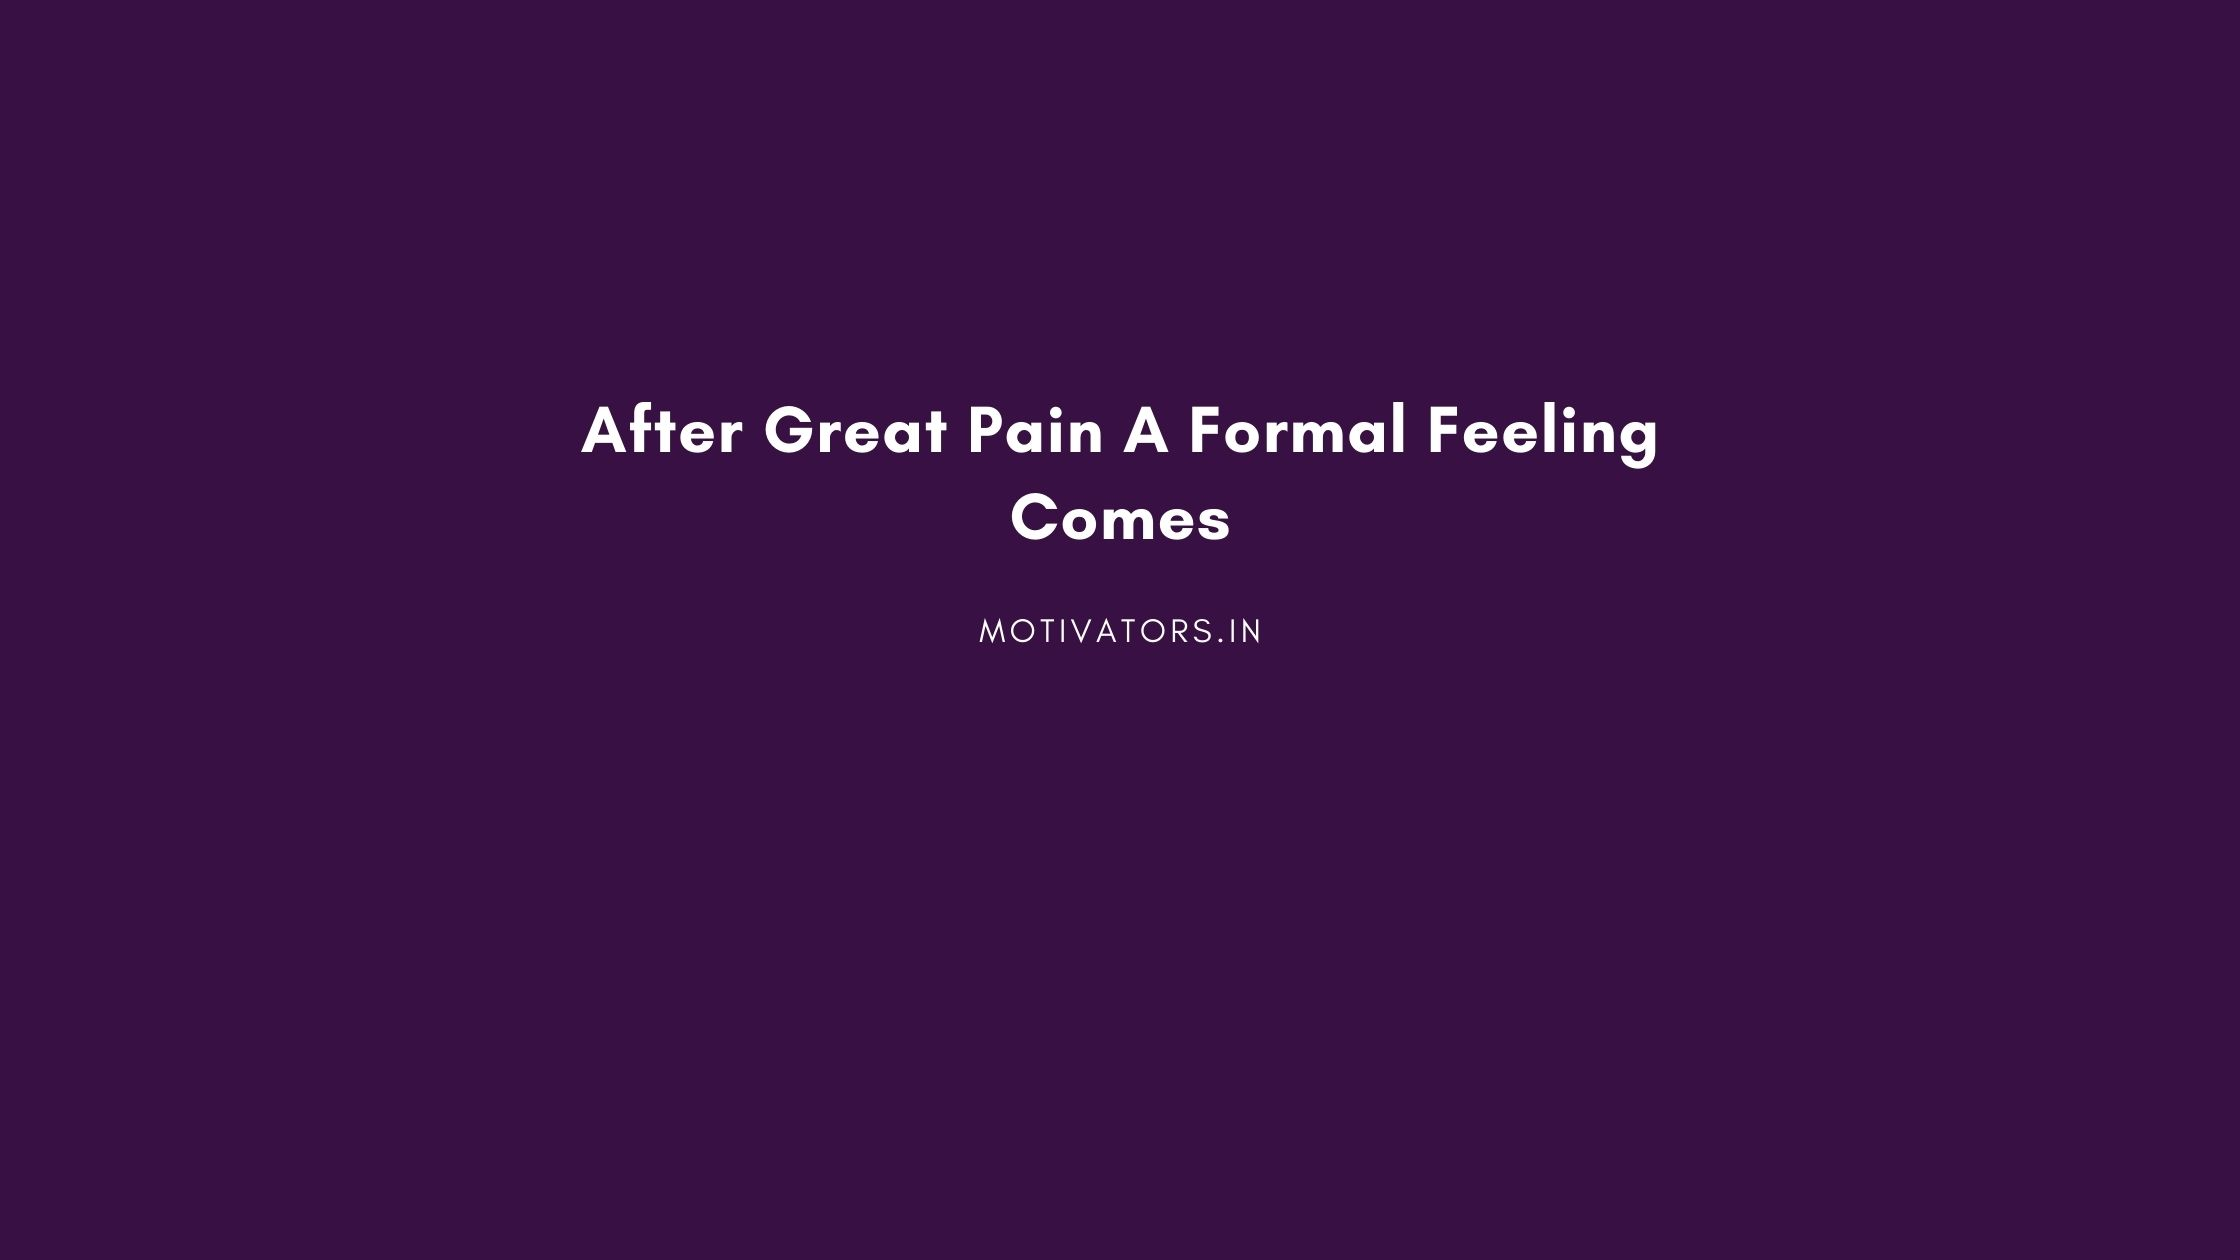 After Great Pain A Formal Feeling Comes